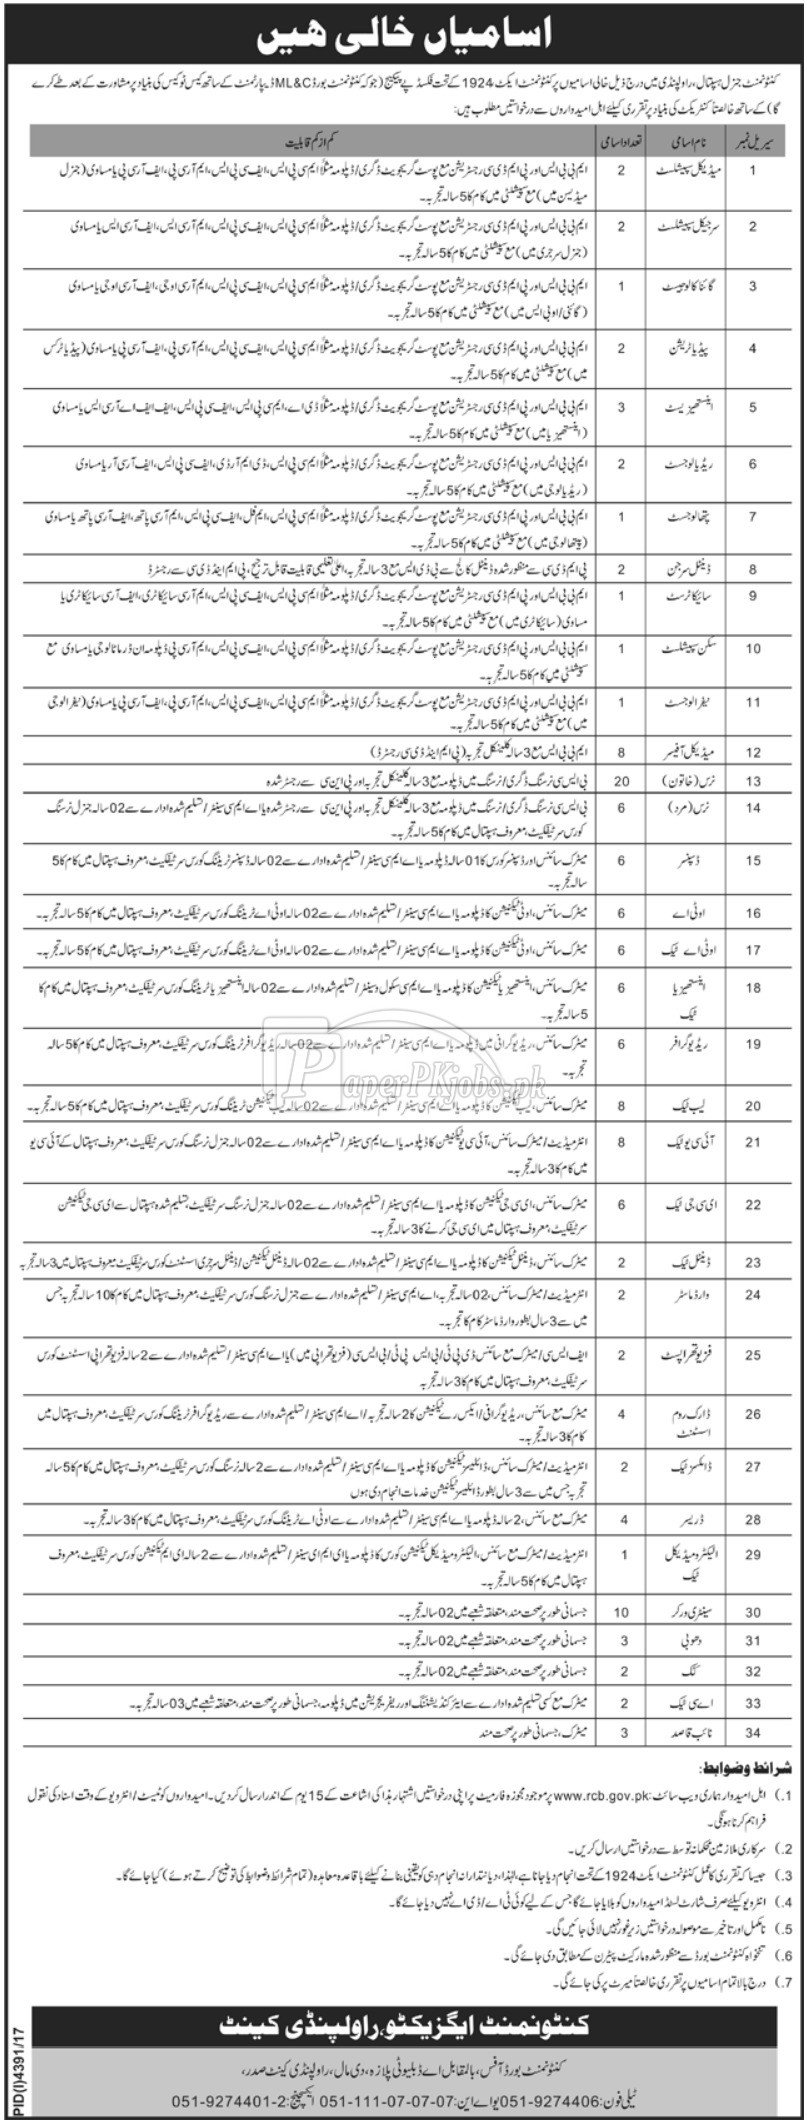 Cantonment General Hospital Rawalpindi Jobs 2018